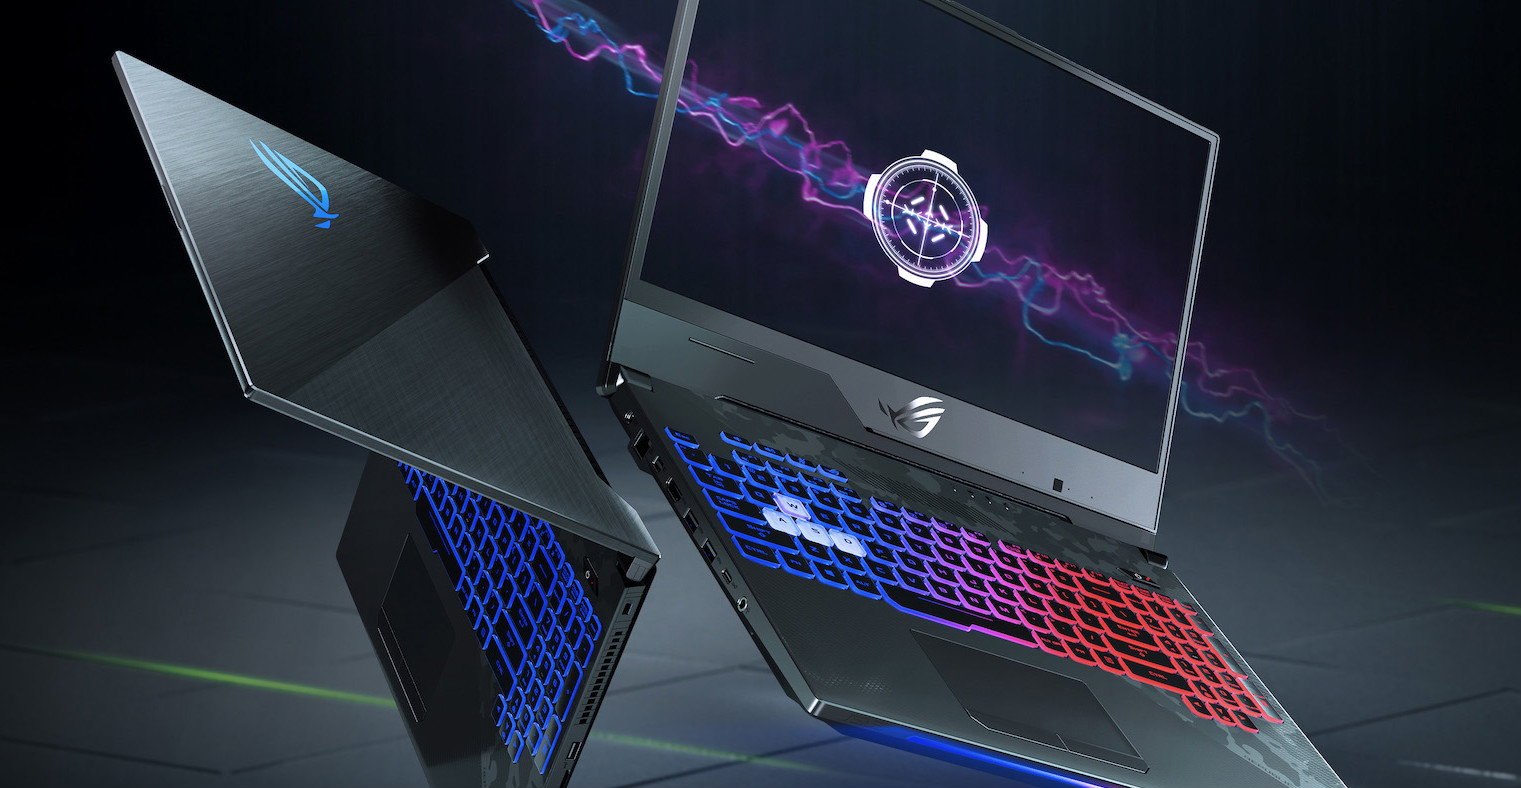 ASUS ROG Strix Scar II review